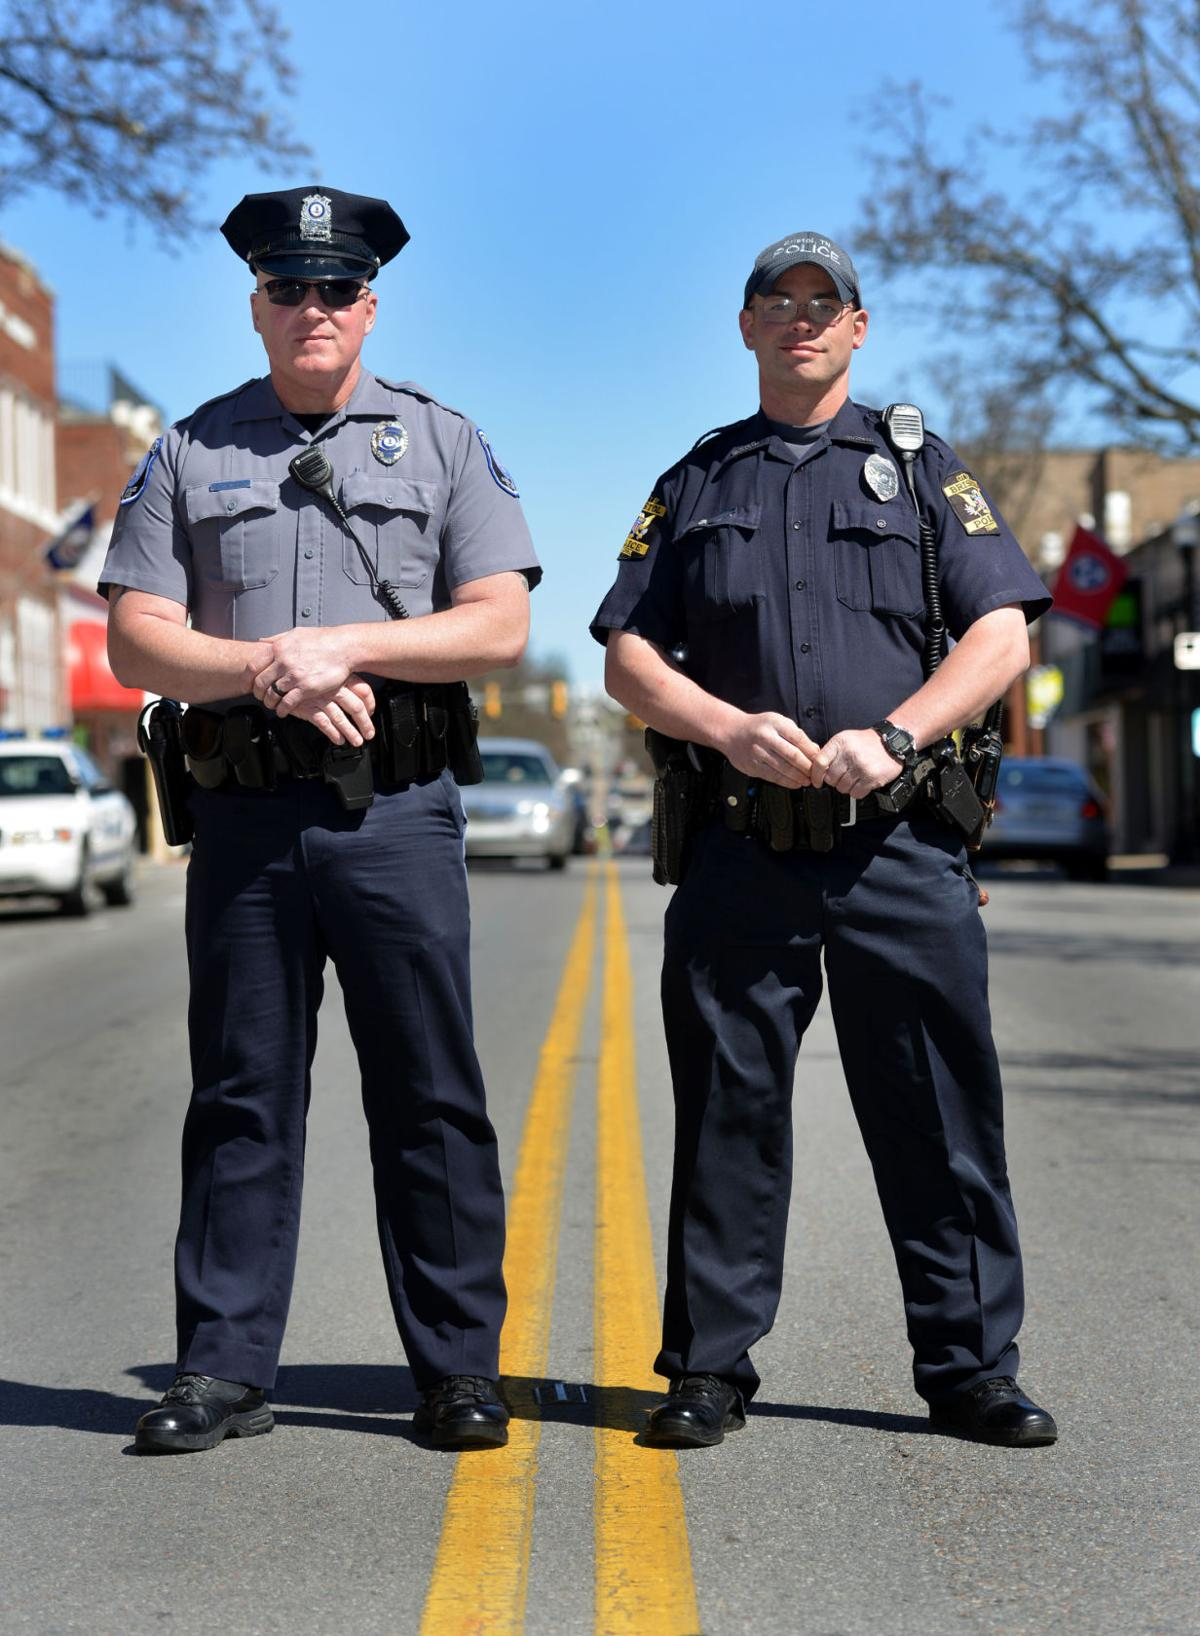 Full-time officers now patrol Bristol downtown on both sides